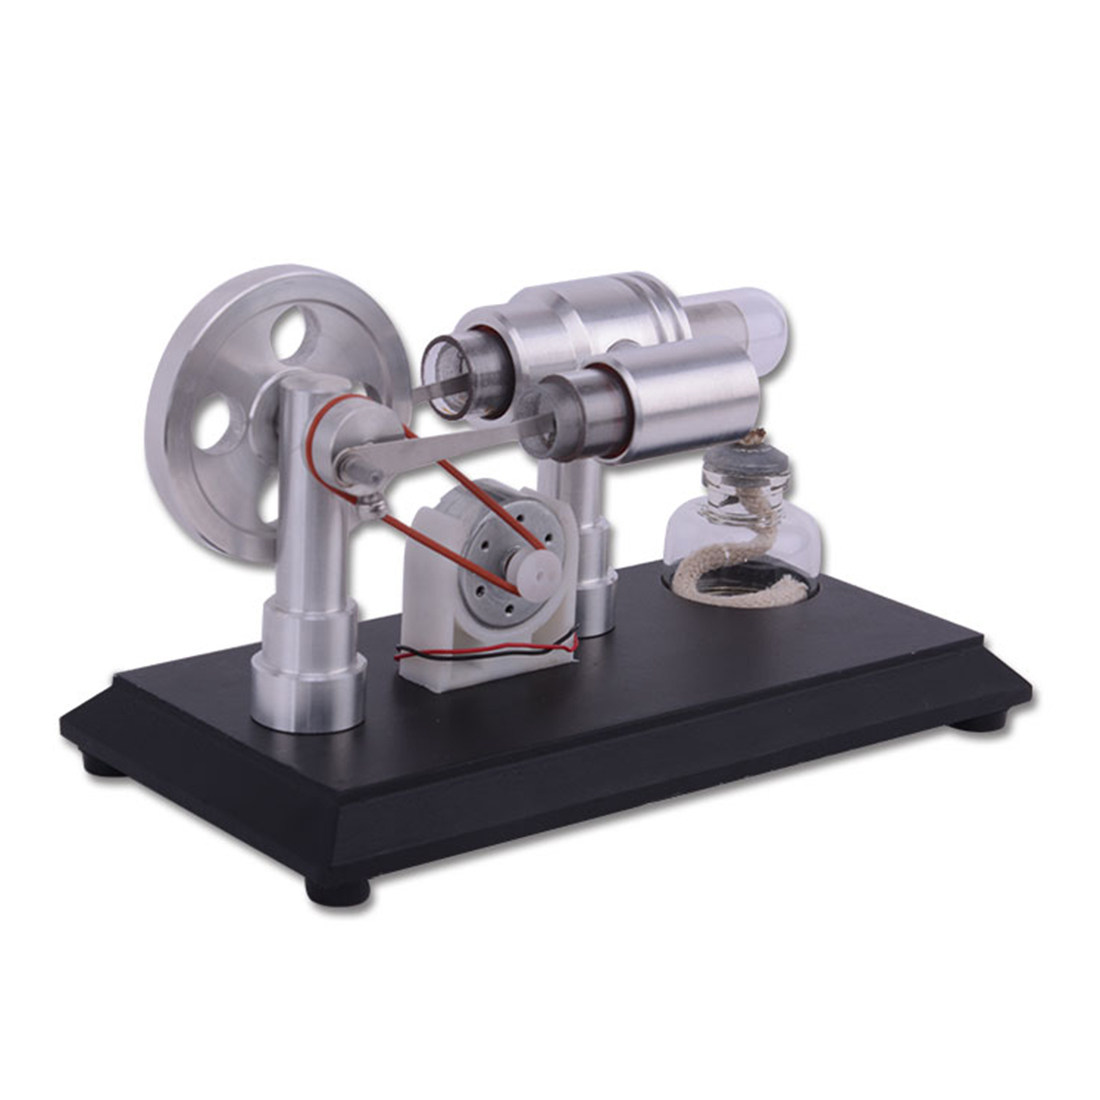 Double-cylinder Micro DIY Stirling Engine External Combustion Engine metal baseboard double cylinder micro diy stirling engine external combustion engine